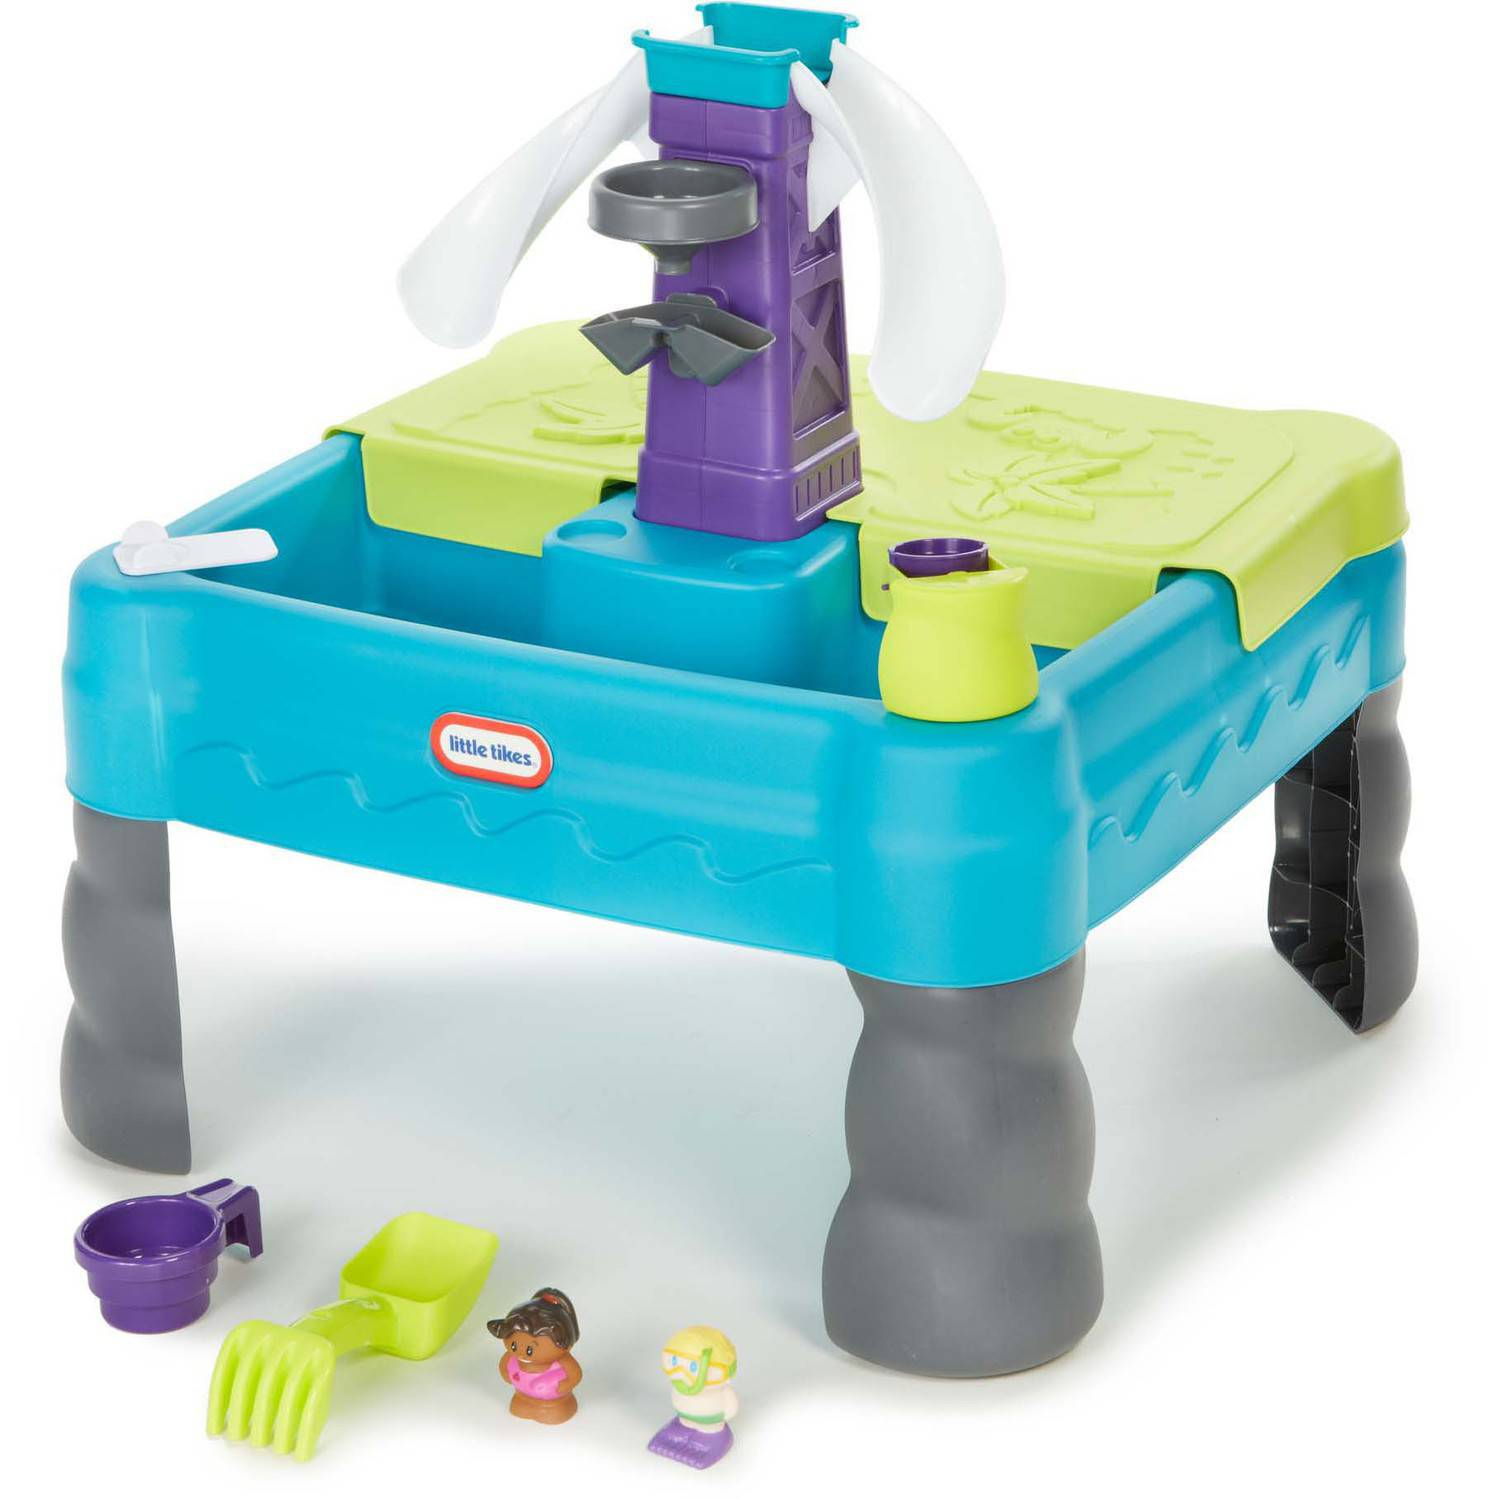 Little Tikes Sandy Lagoon Waterpark Play Table by MGA Entertainment